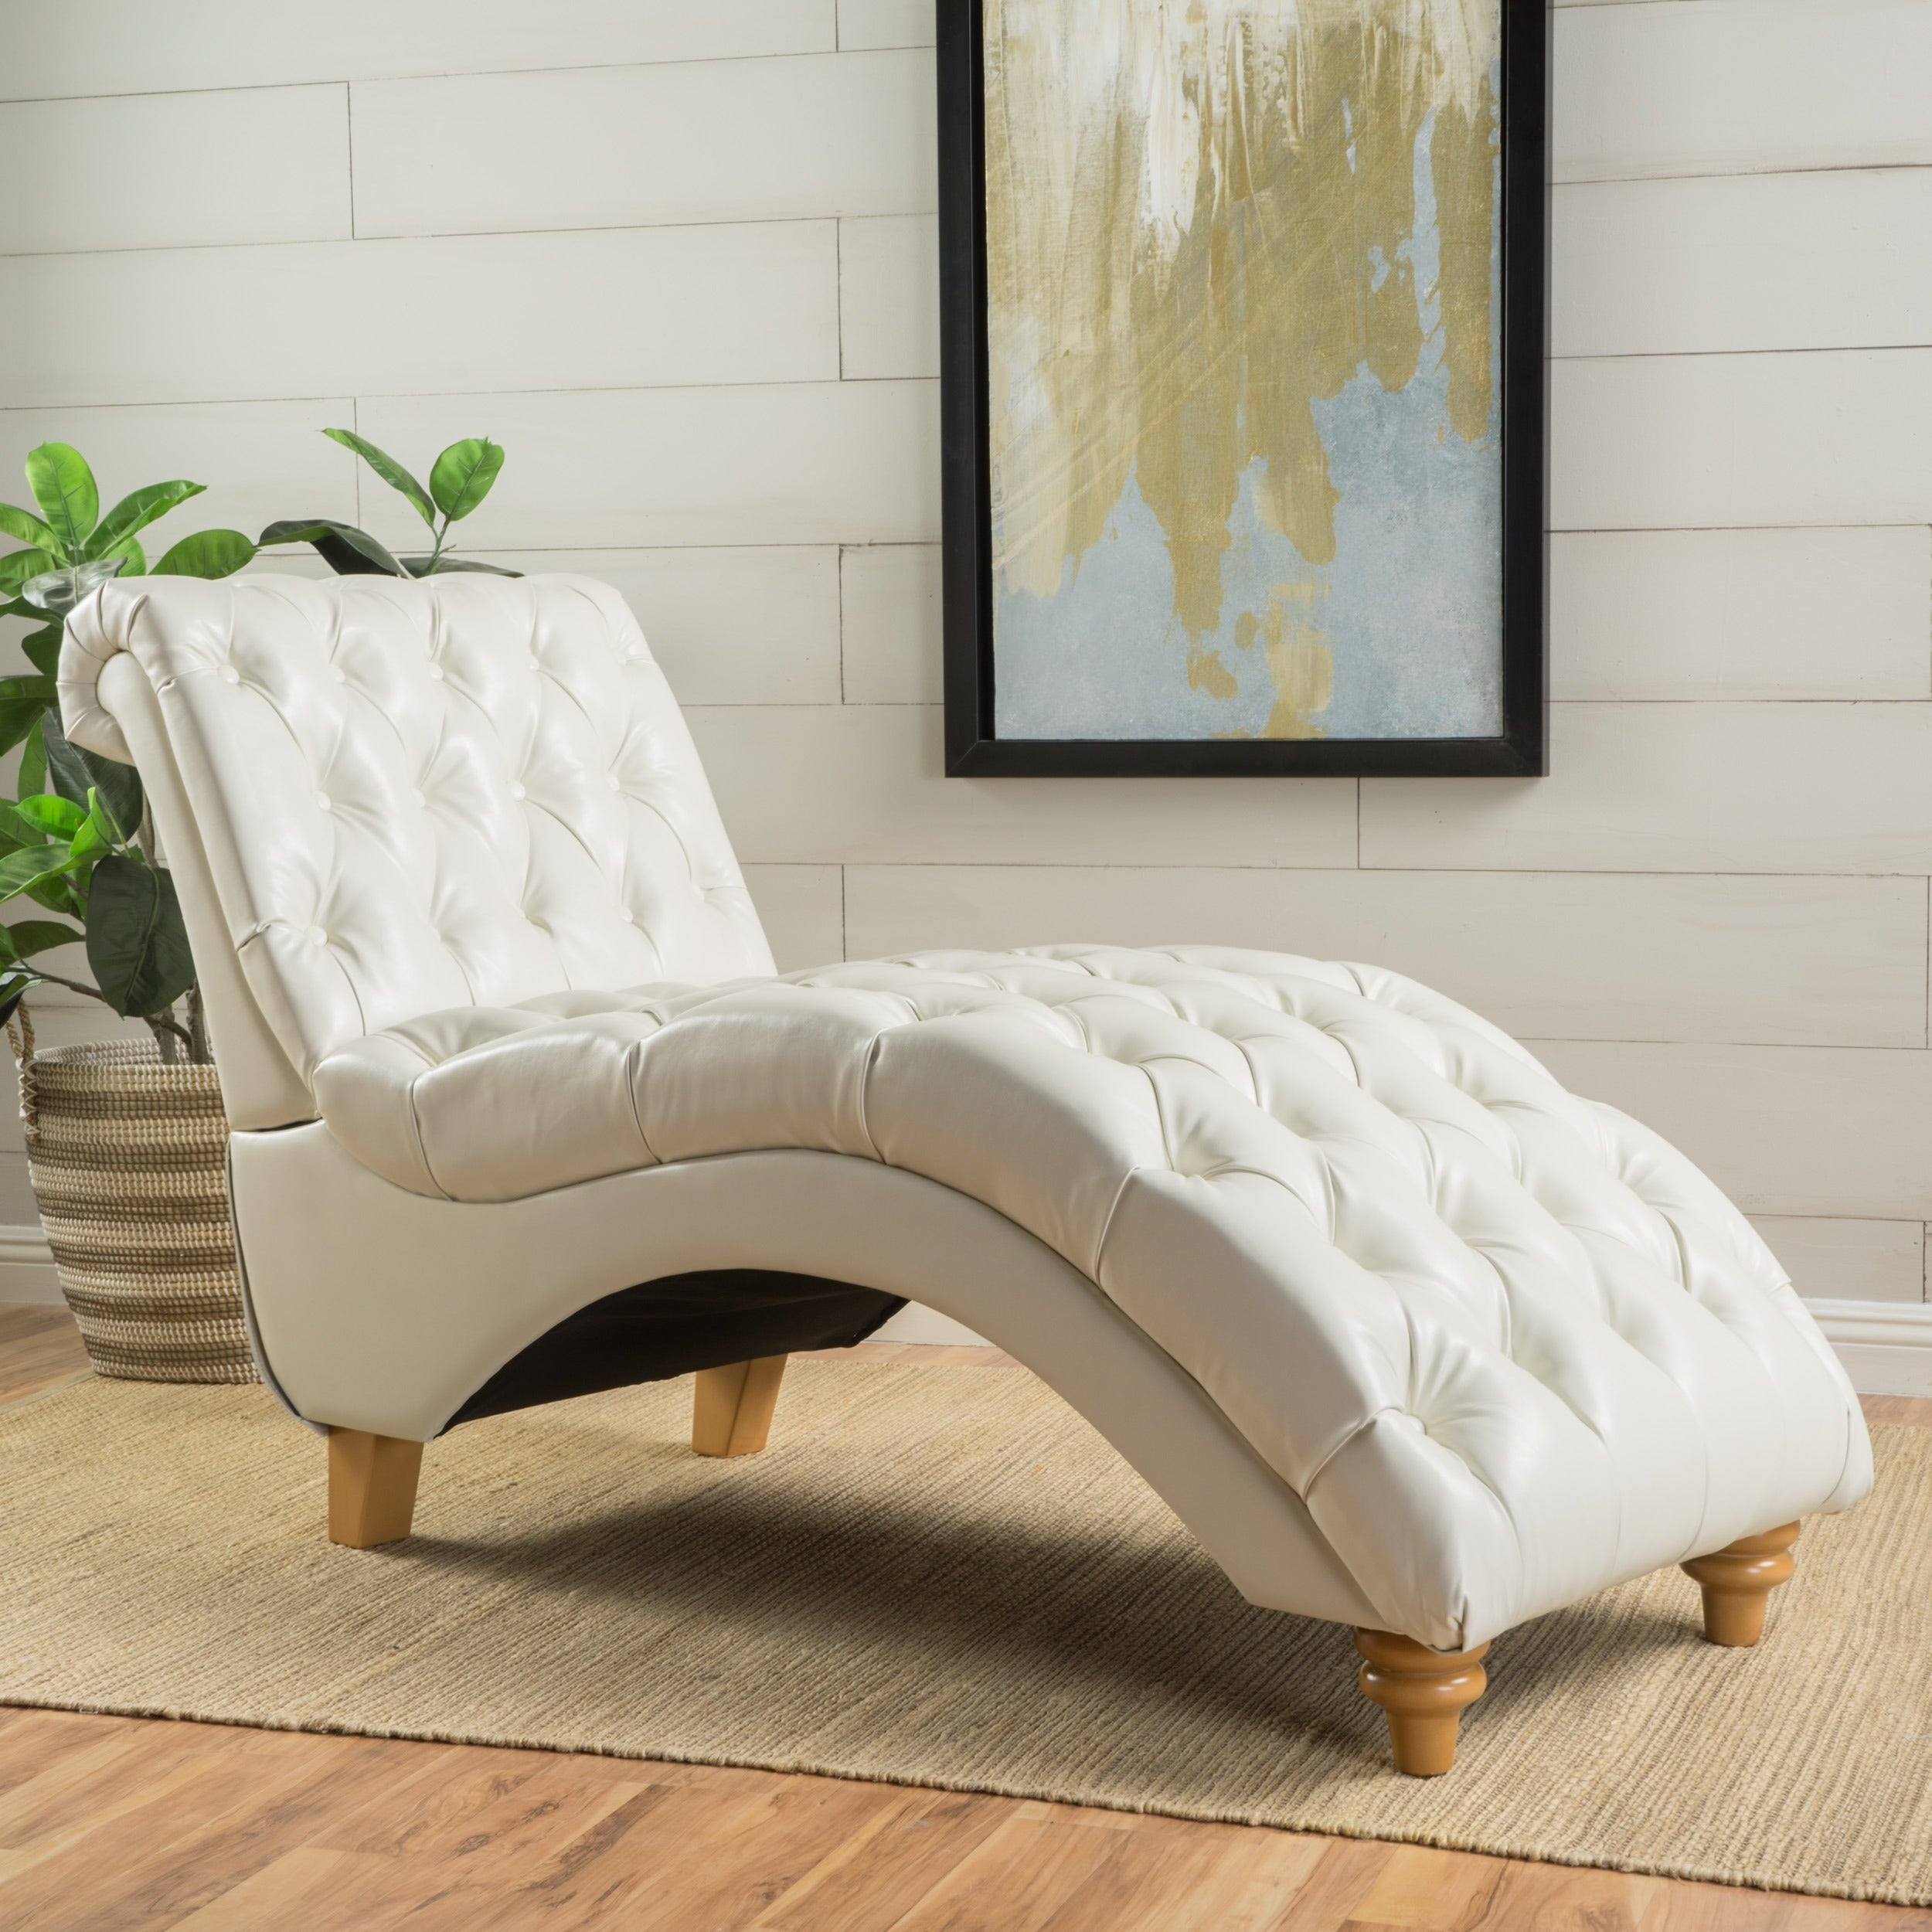 Rhodes Tufted Faux Leather Chaise Lounge Chair By Christopher Knight Home On Free Shipping Today 14271793